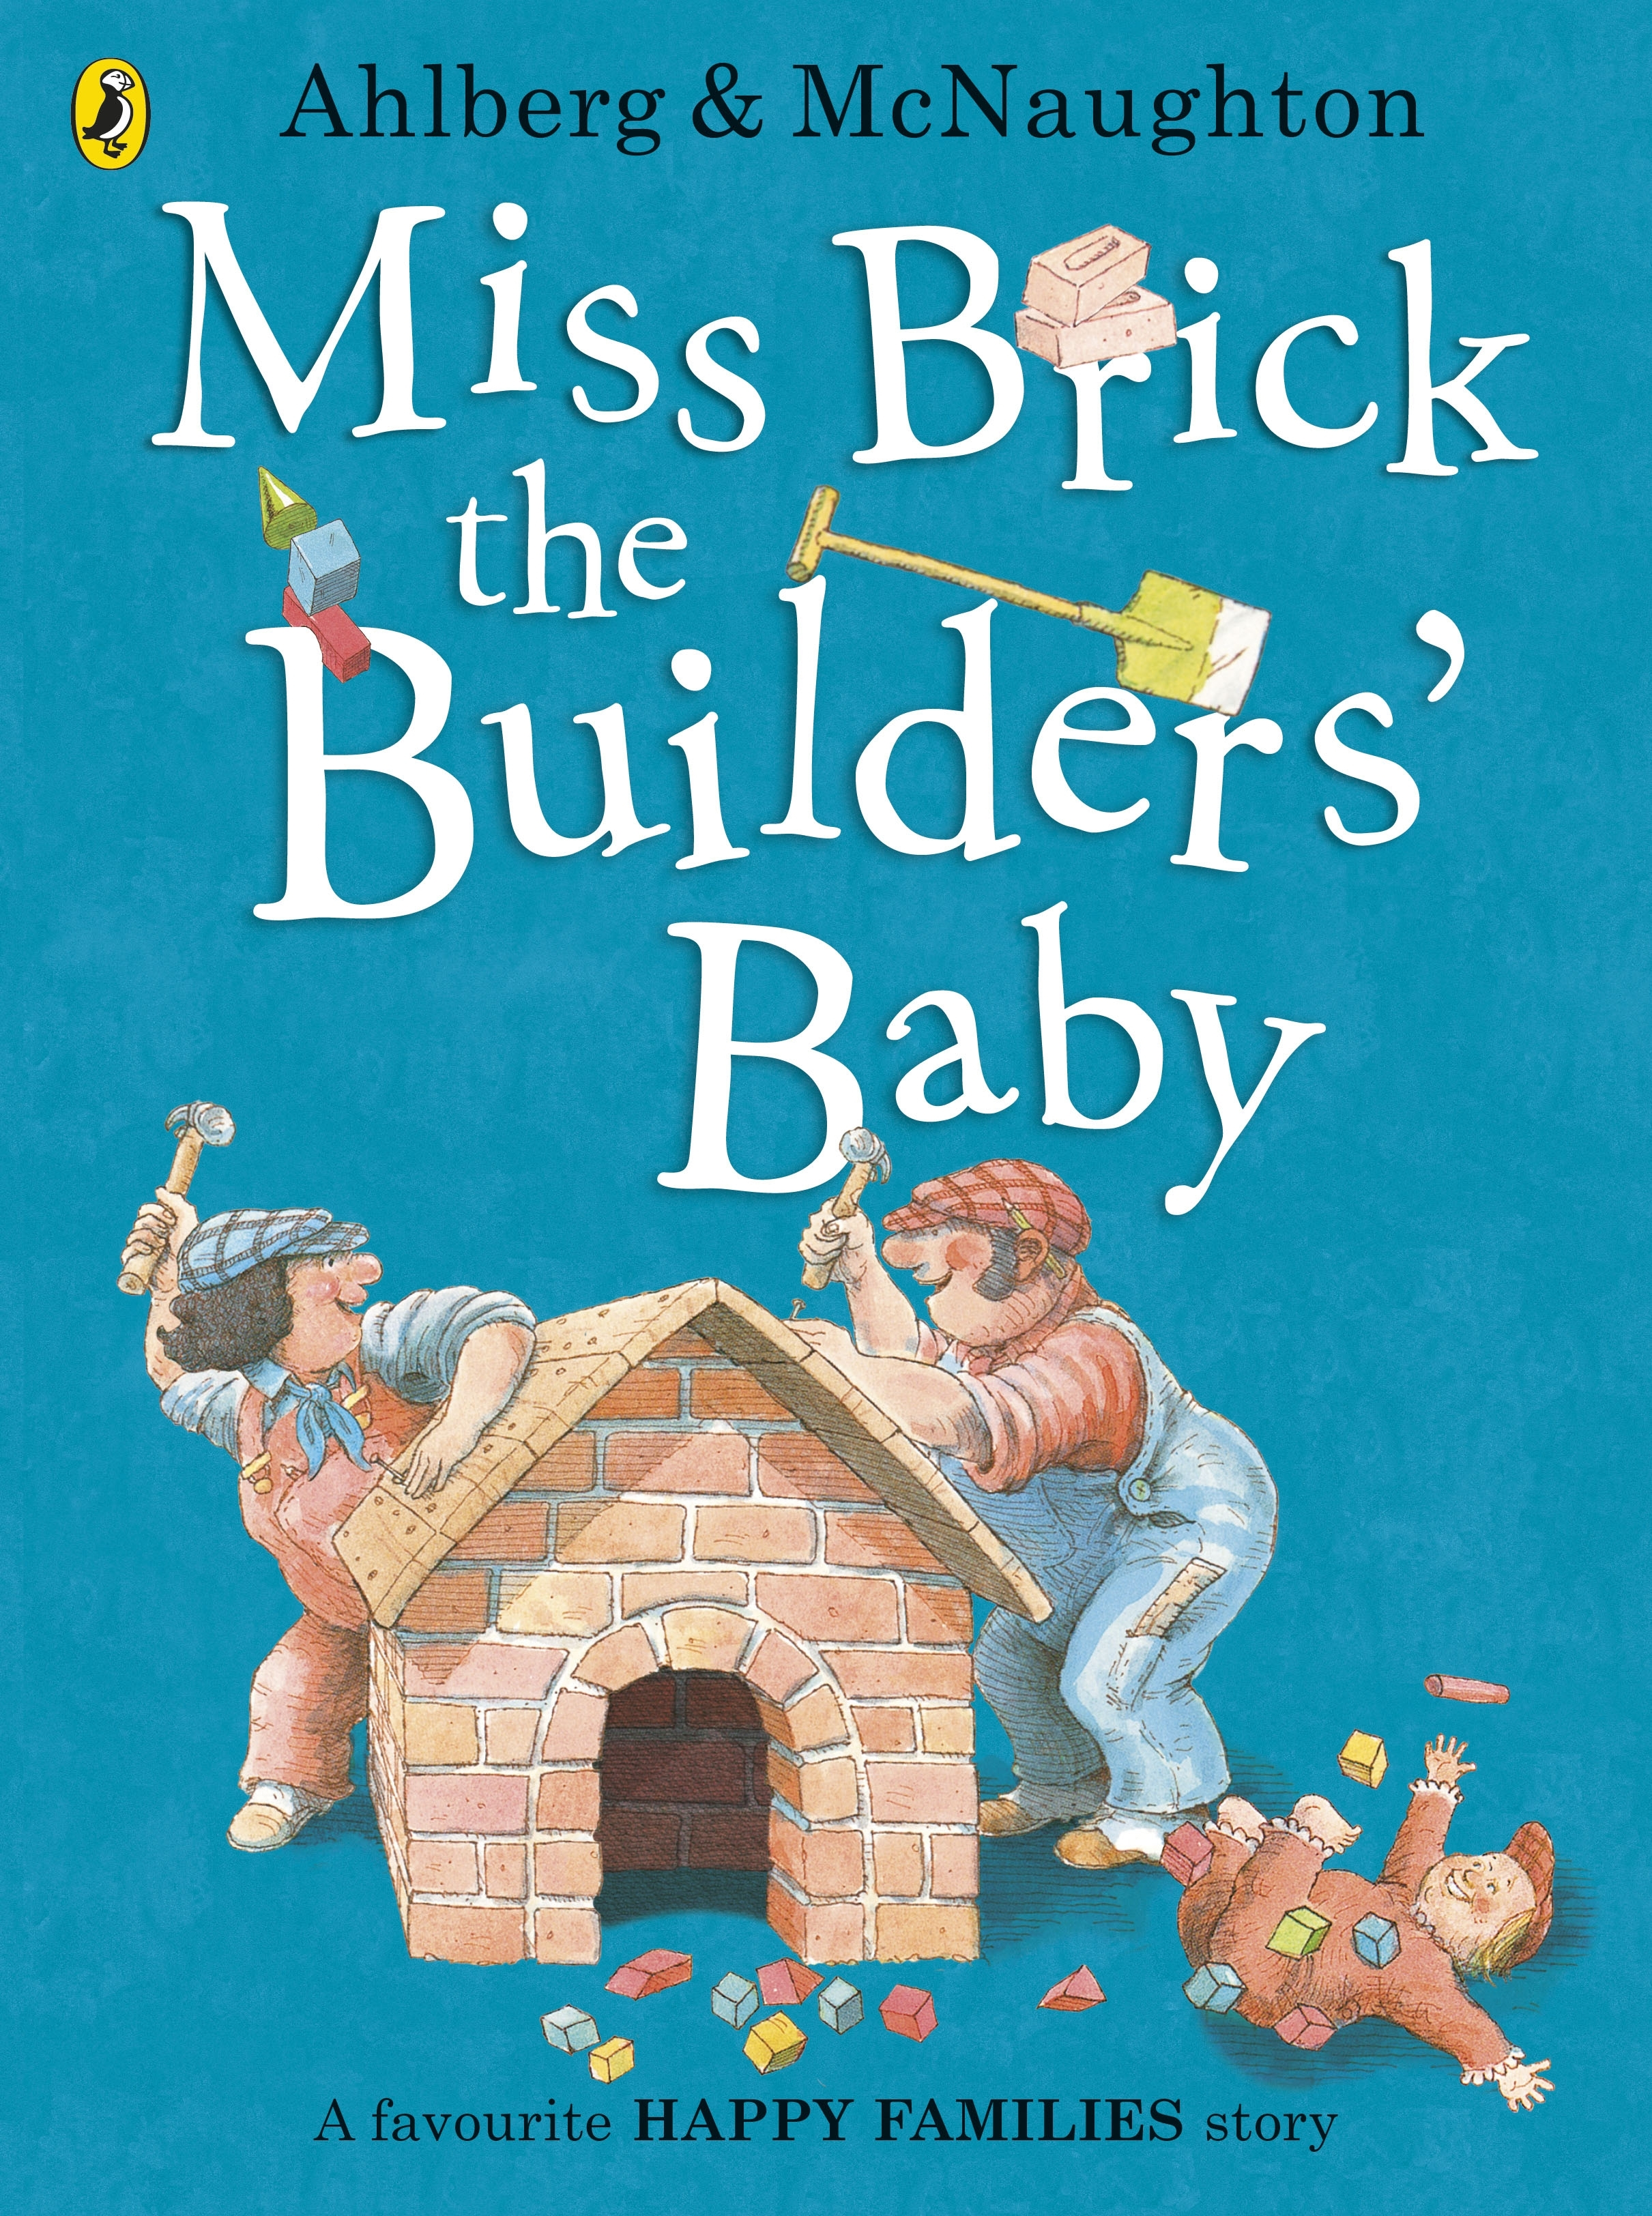 Miss Brick The Builders' Baby by Allan Ahlberg - Penguin Books New